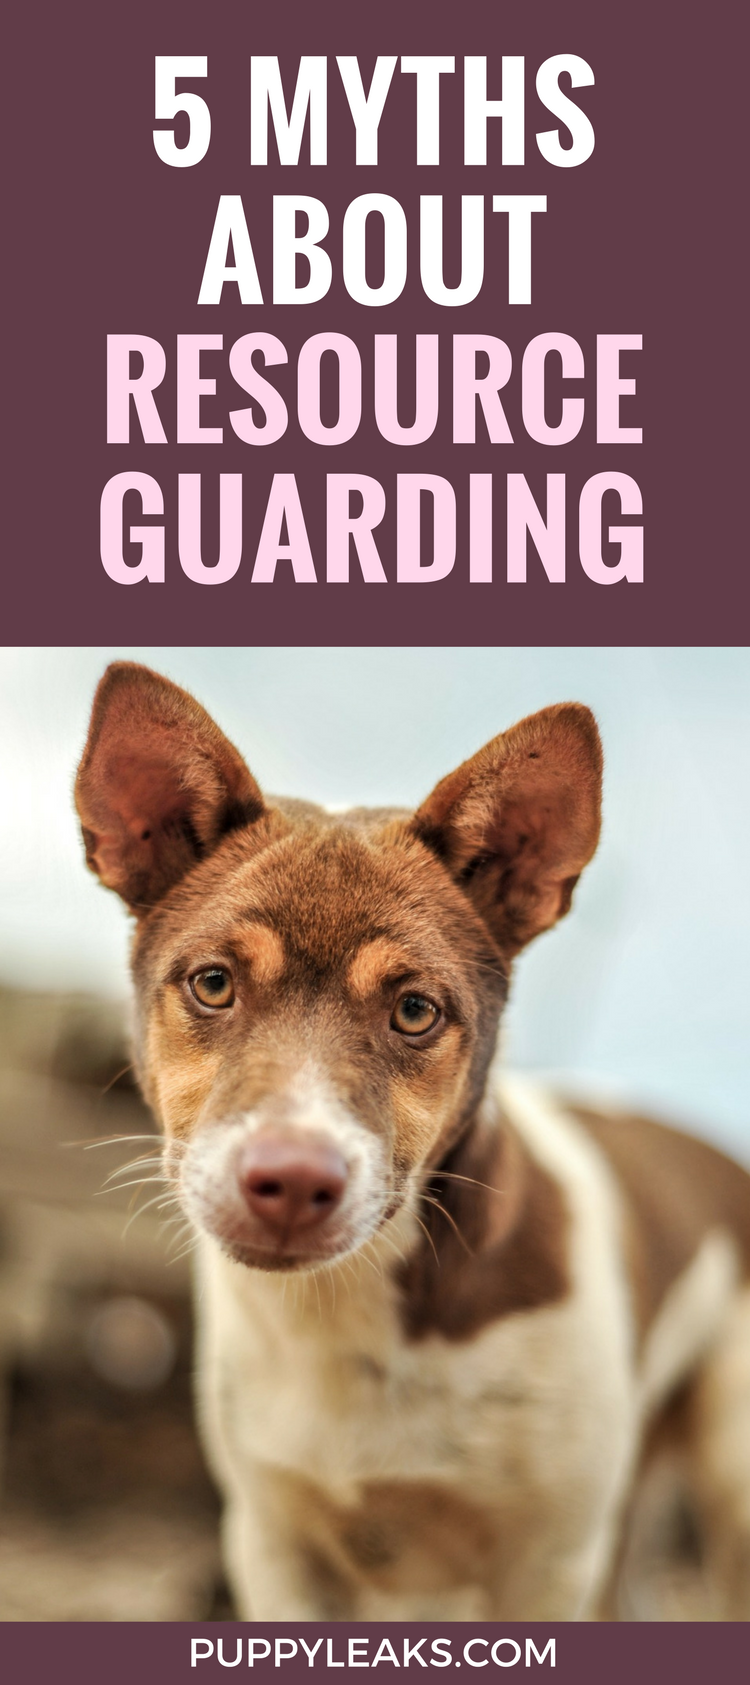 Does your dog get possessive of his food or toys? Here's 5 myths about resource guarding in dogs, and tips on how to manage it.